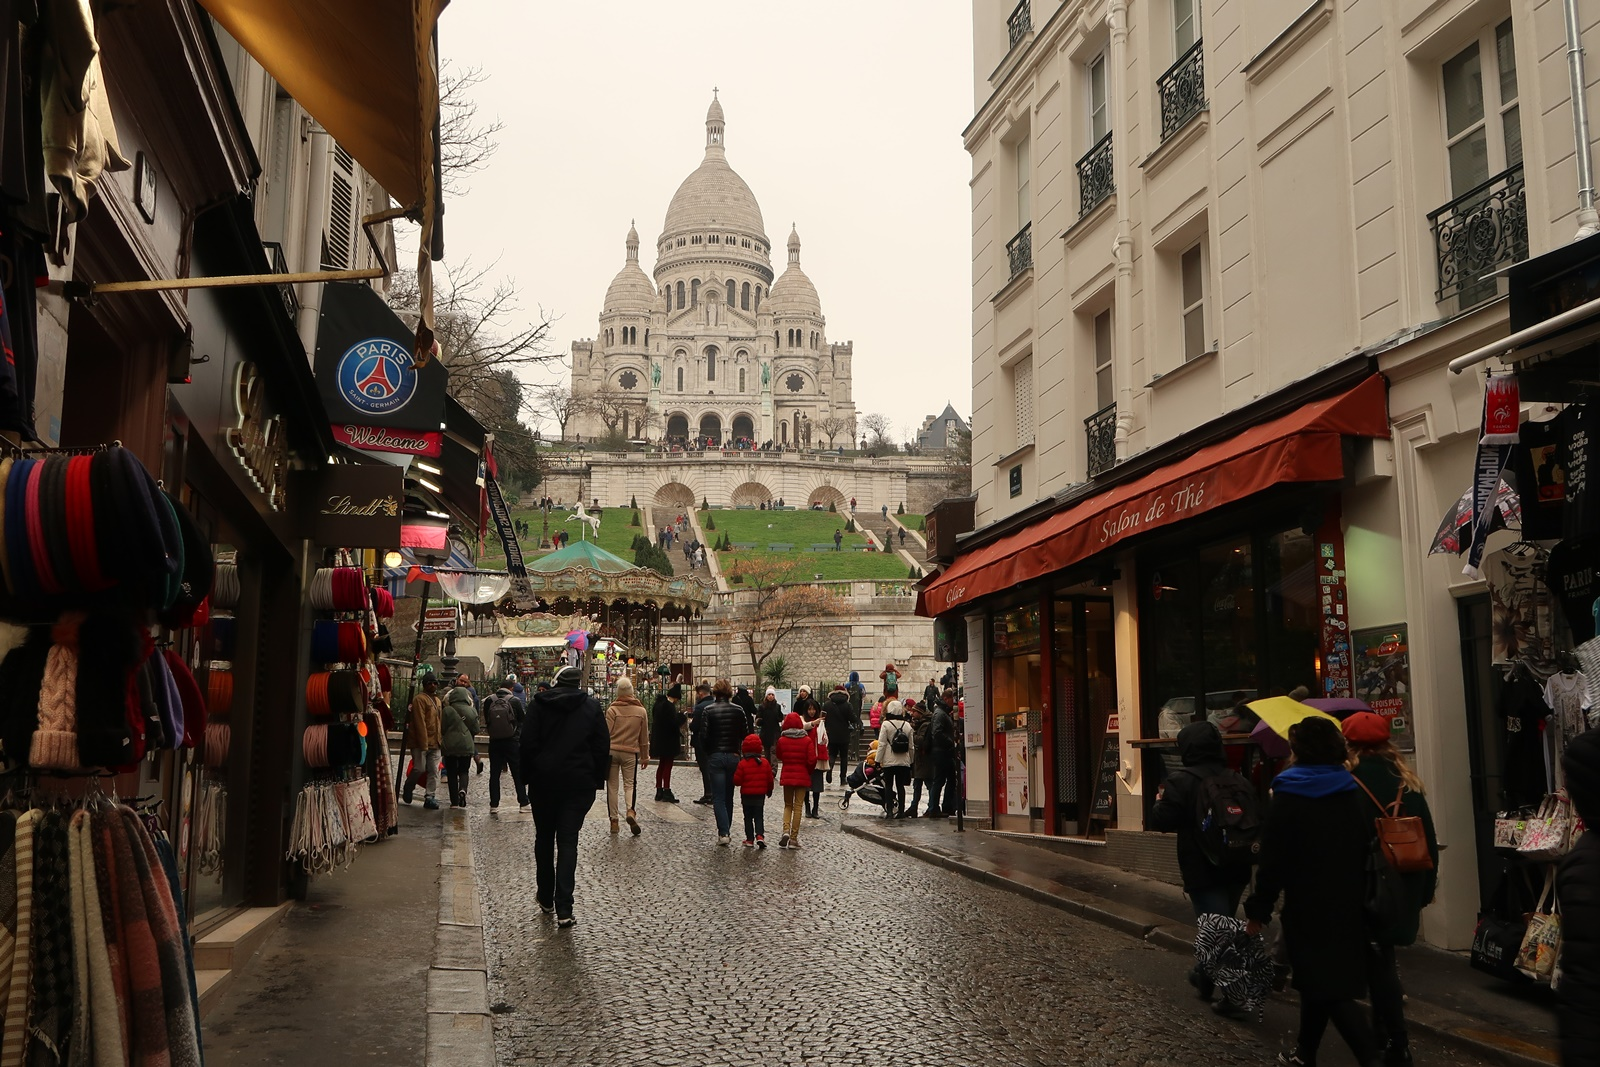 montmartre sacre coeur sacred heart paris france attraction 2 days in paris